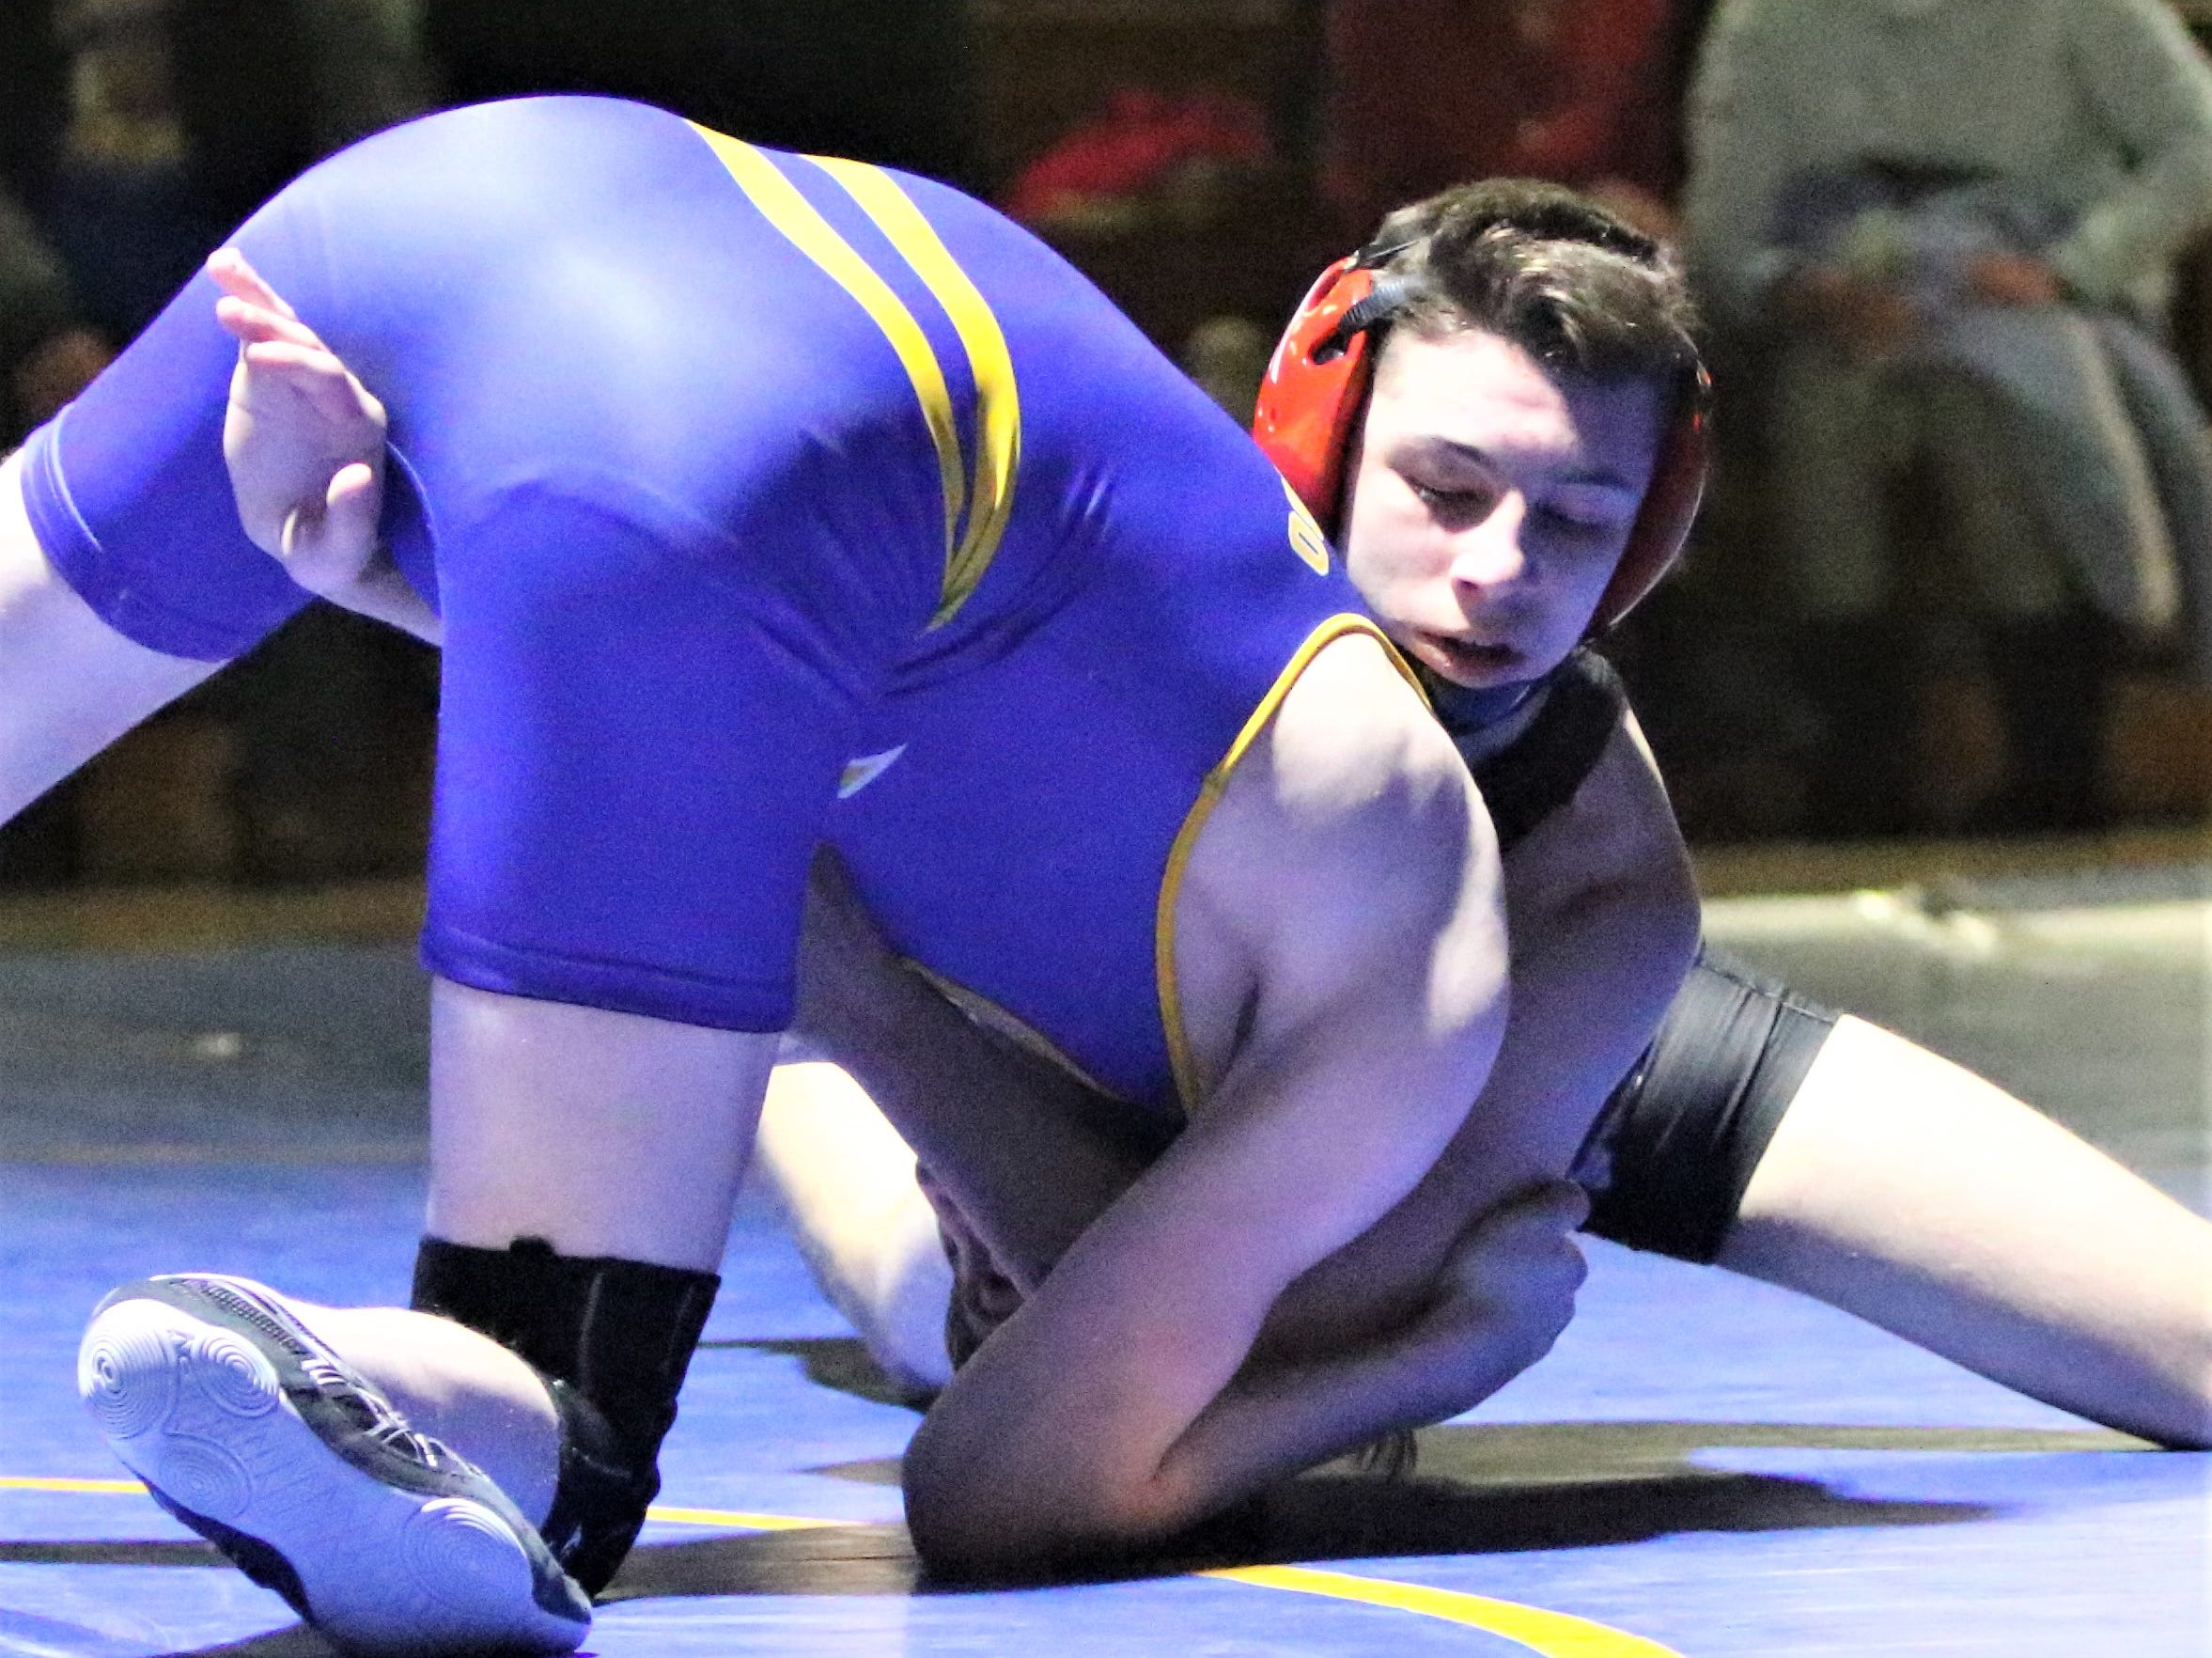 Wauwatosa's Dayton Lewis (back) wrestles against Mukwonago's Josiah Lynden in a WIAA sectional final on Feb. 13, 2019.